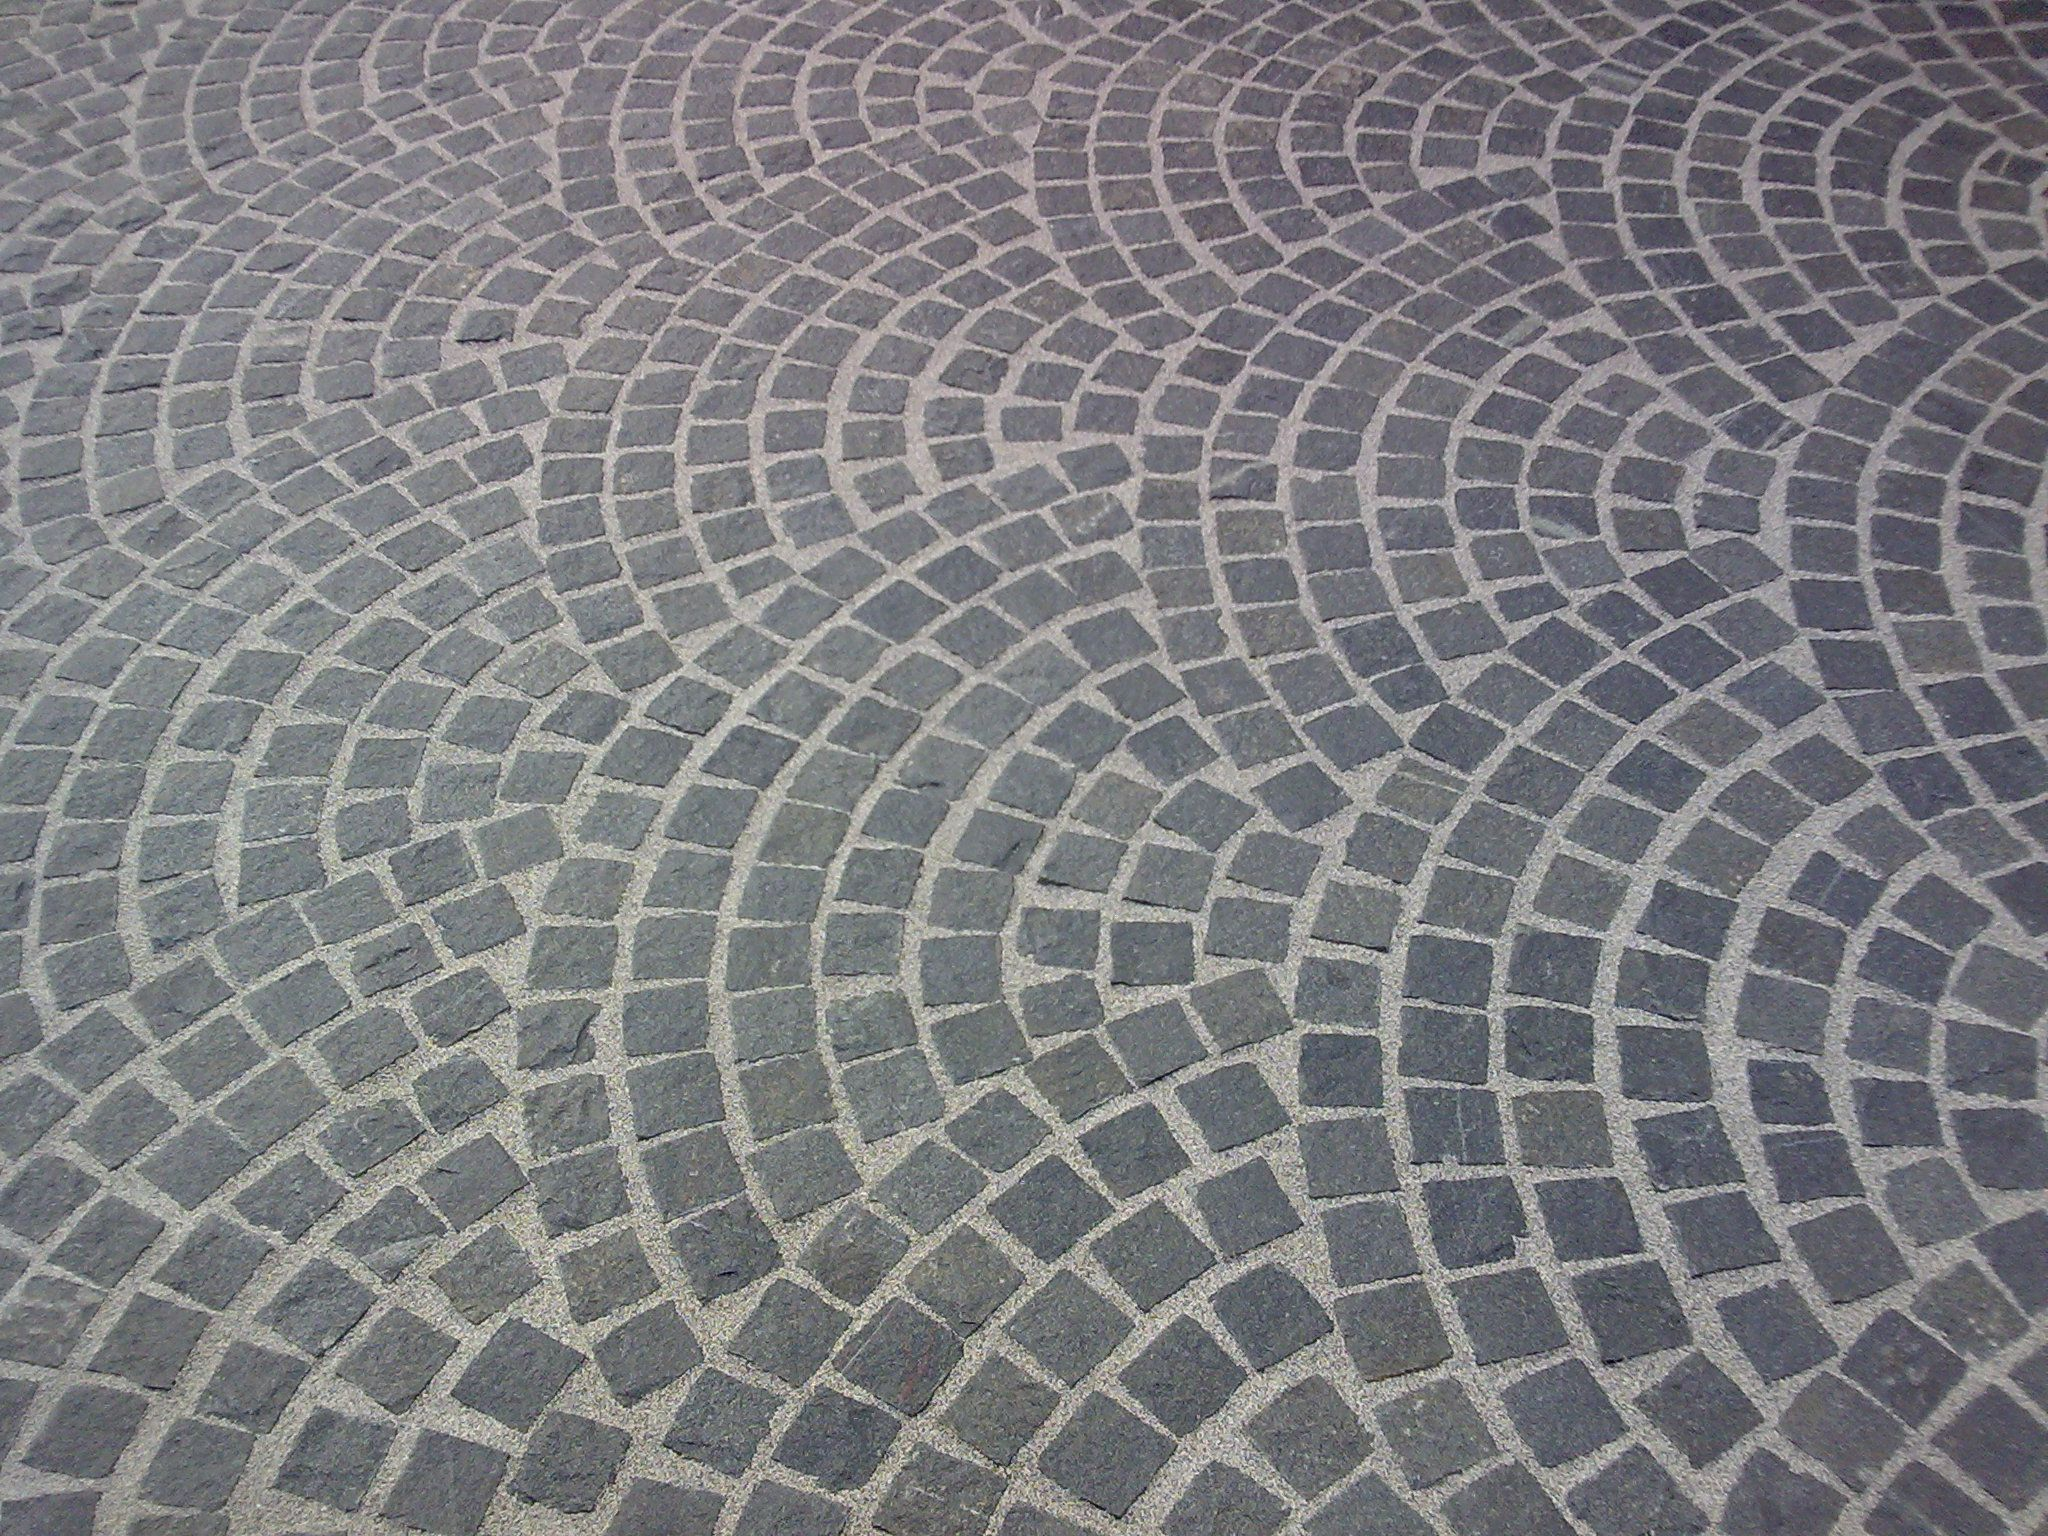 Granite Setts Driveway Old Rectory Pinterest Granite Driveways And Snakes